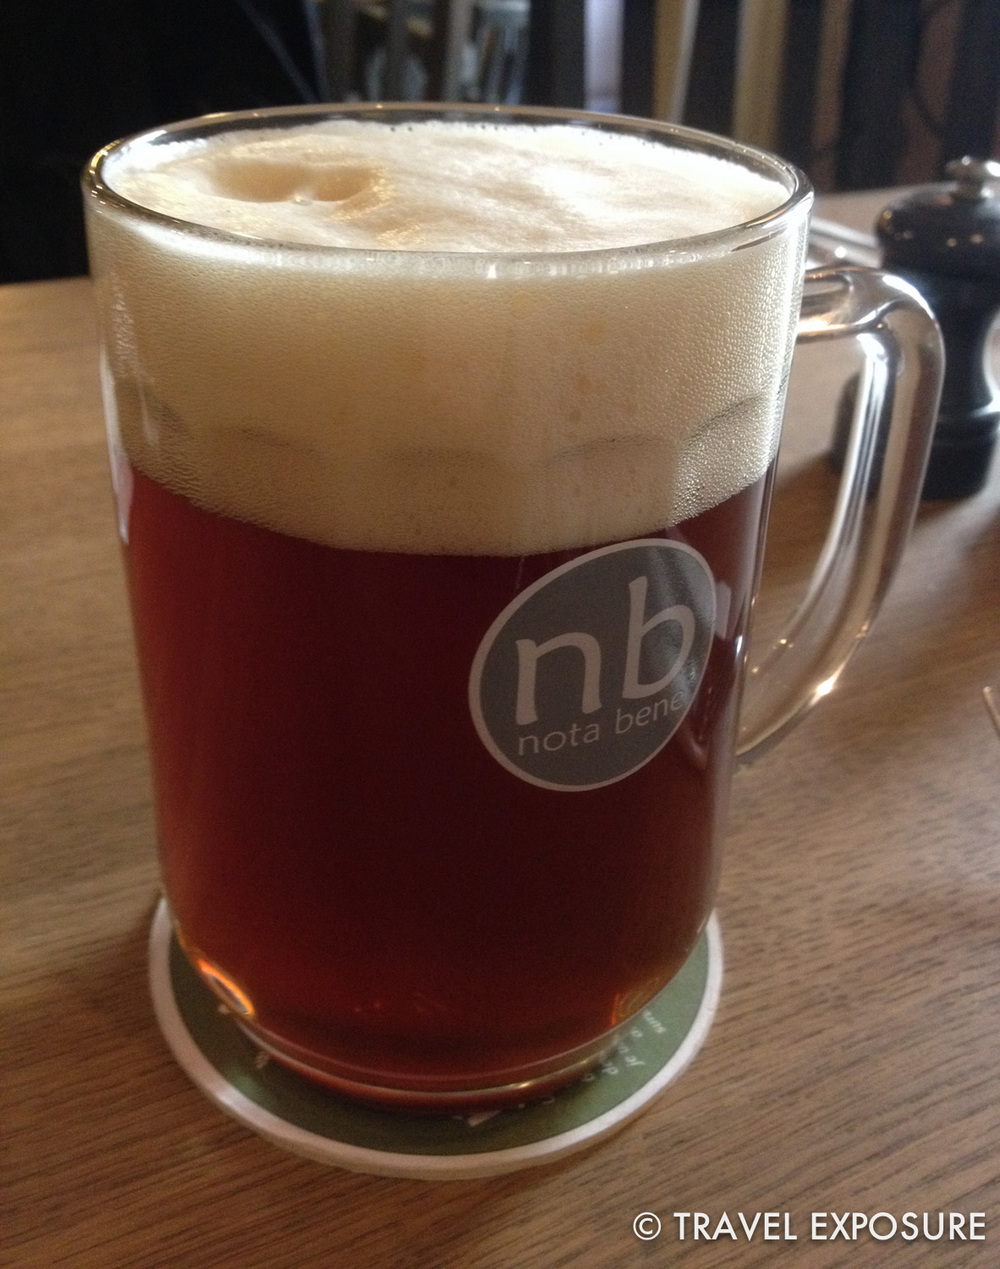 This Nota Bene beer in Prague was different... strawberry/apricot flavor; malty and medium body